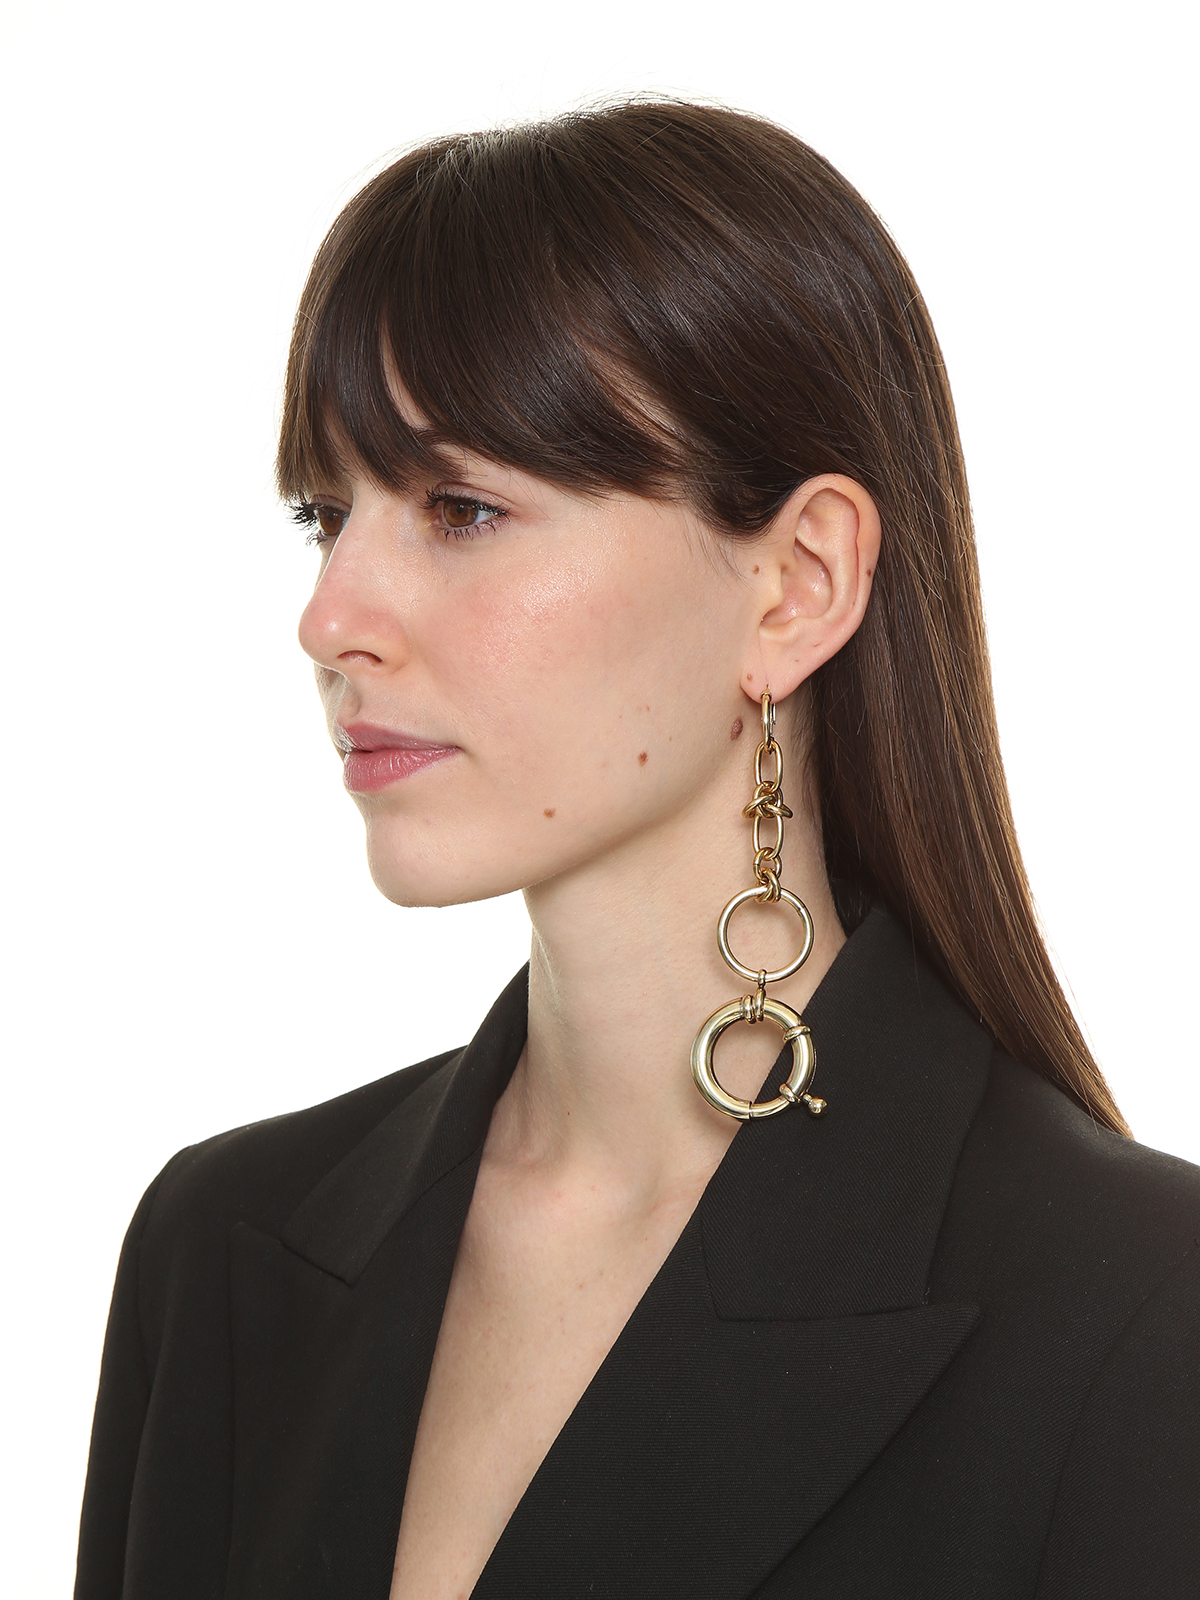 Hoop earrings embellished with pendent chain and dmaxi round clasp